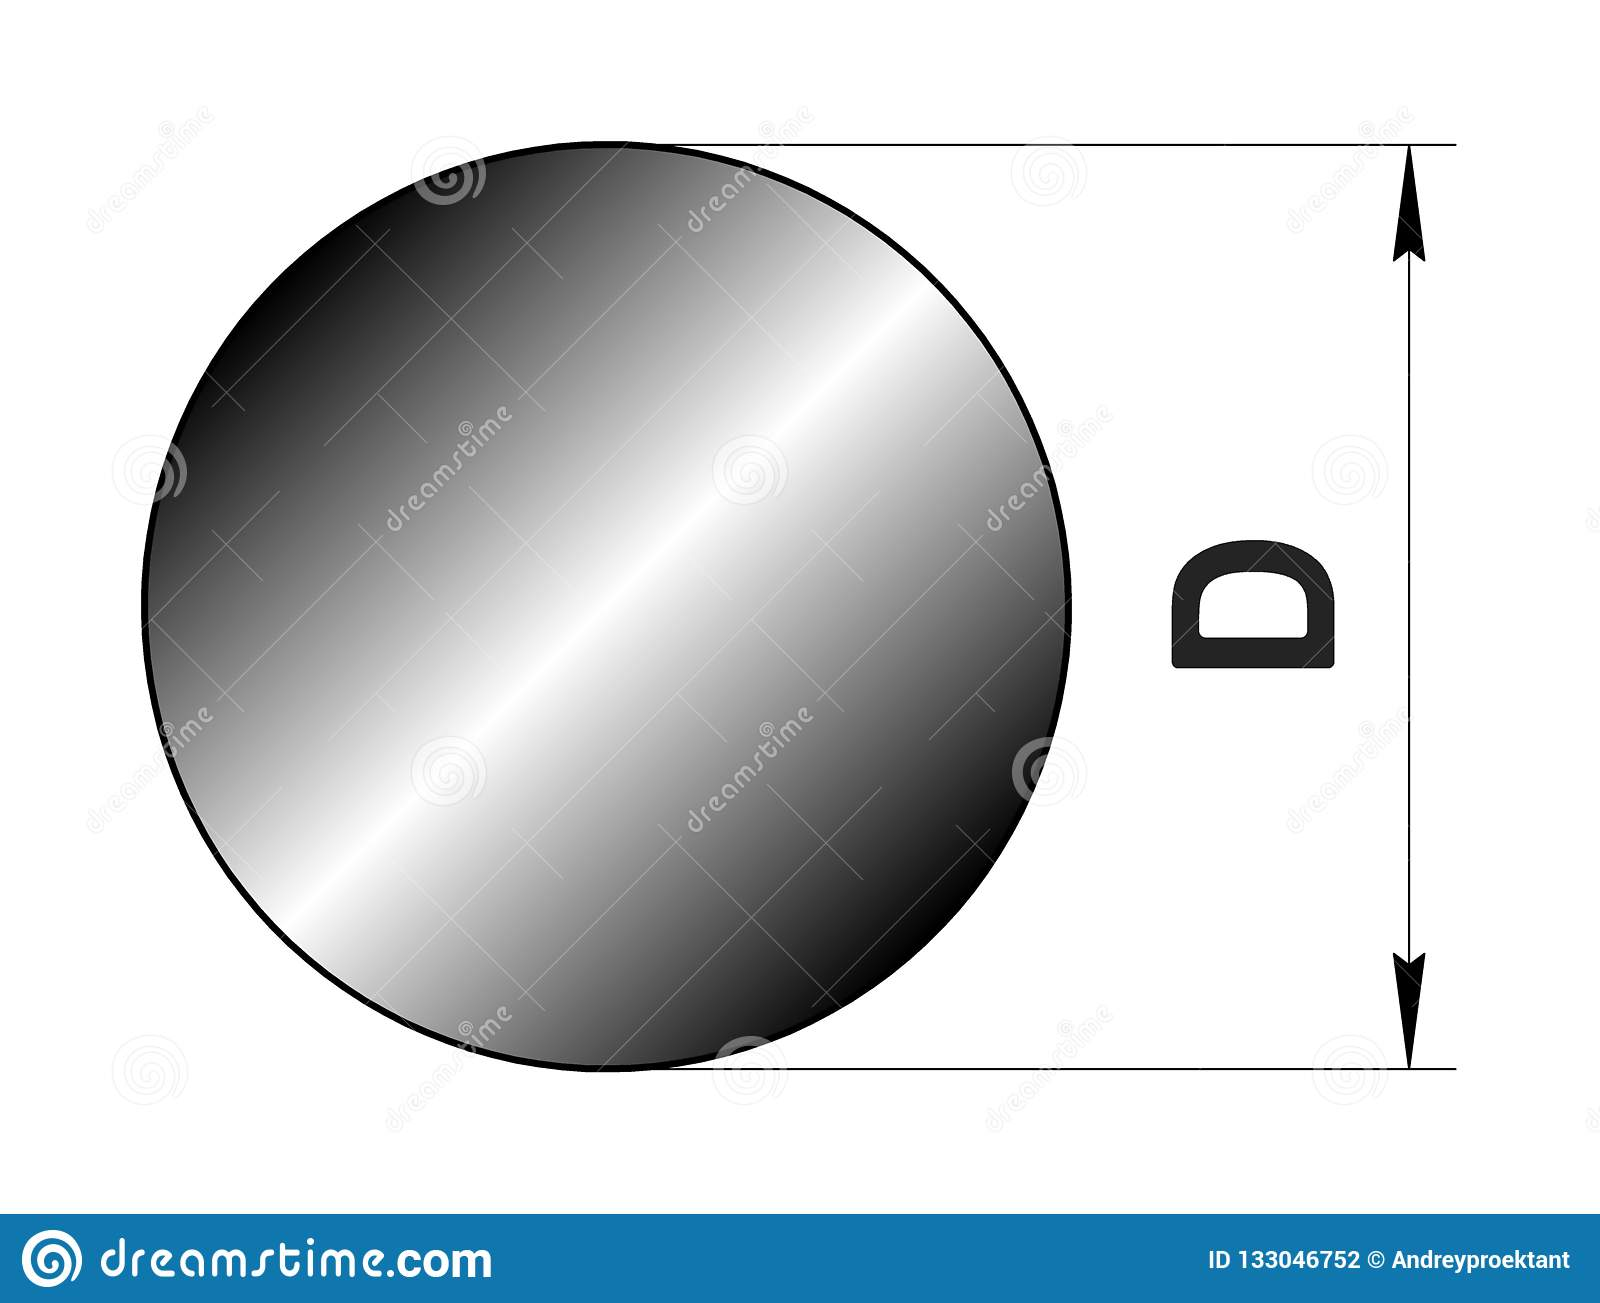 Technical drawing rolled metal. Steel circle profile. Image for web site. Illustration.